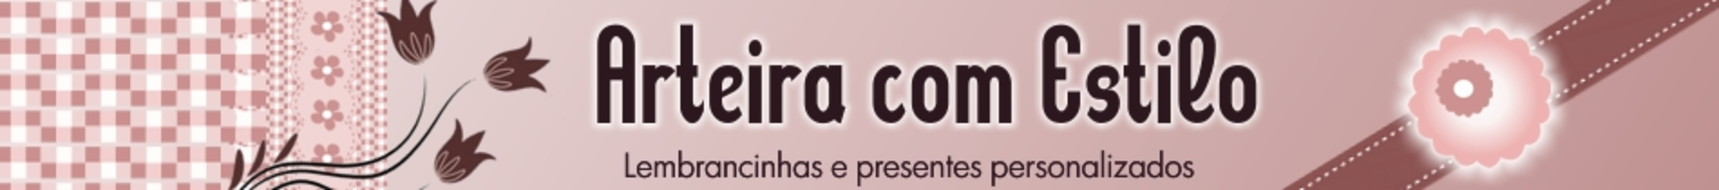 Arteira com Estilo